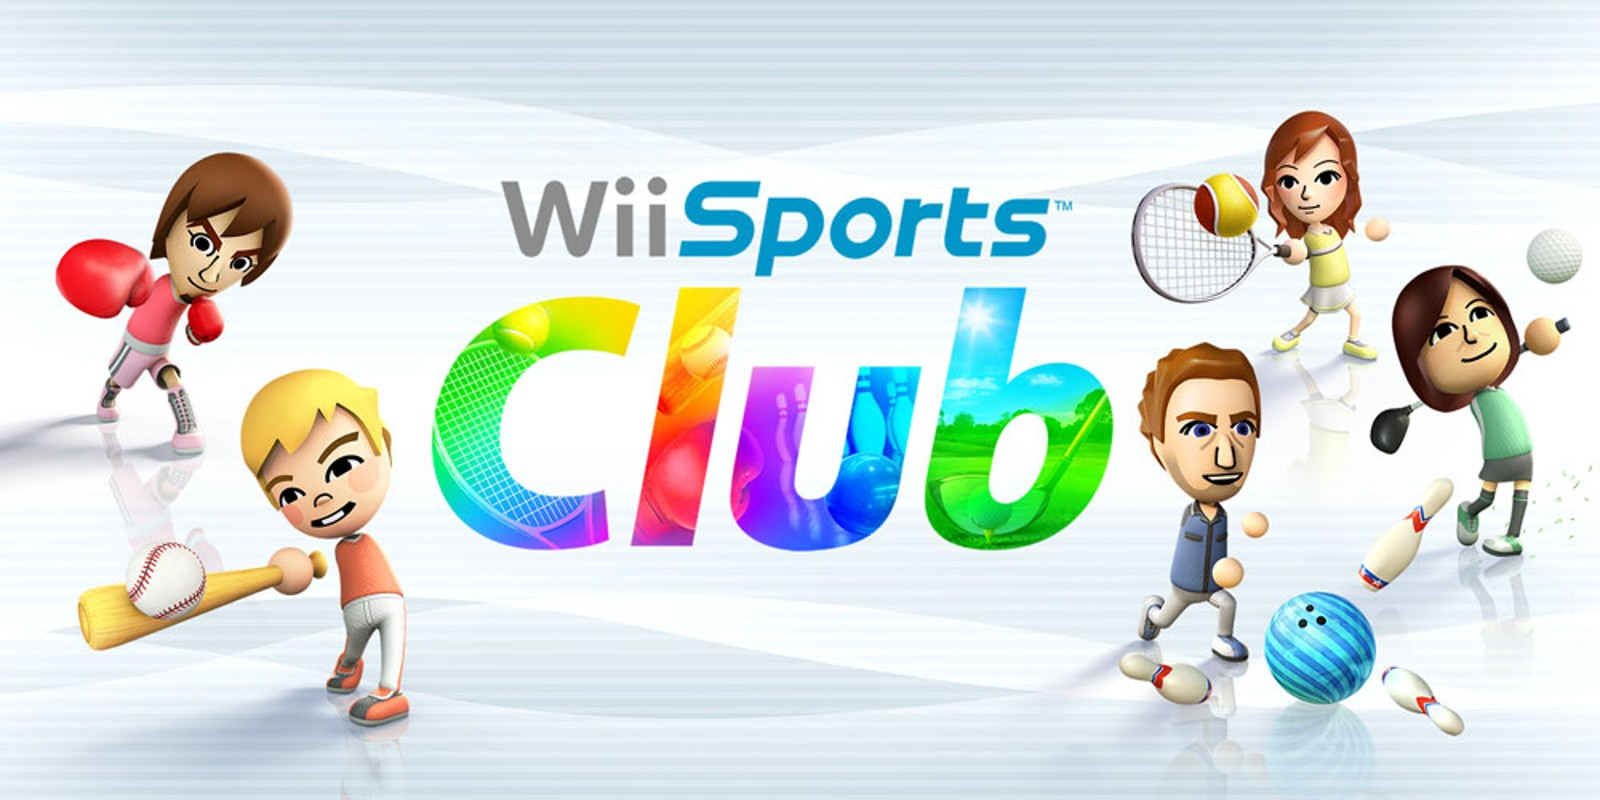 Wii Sports Wallpapers